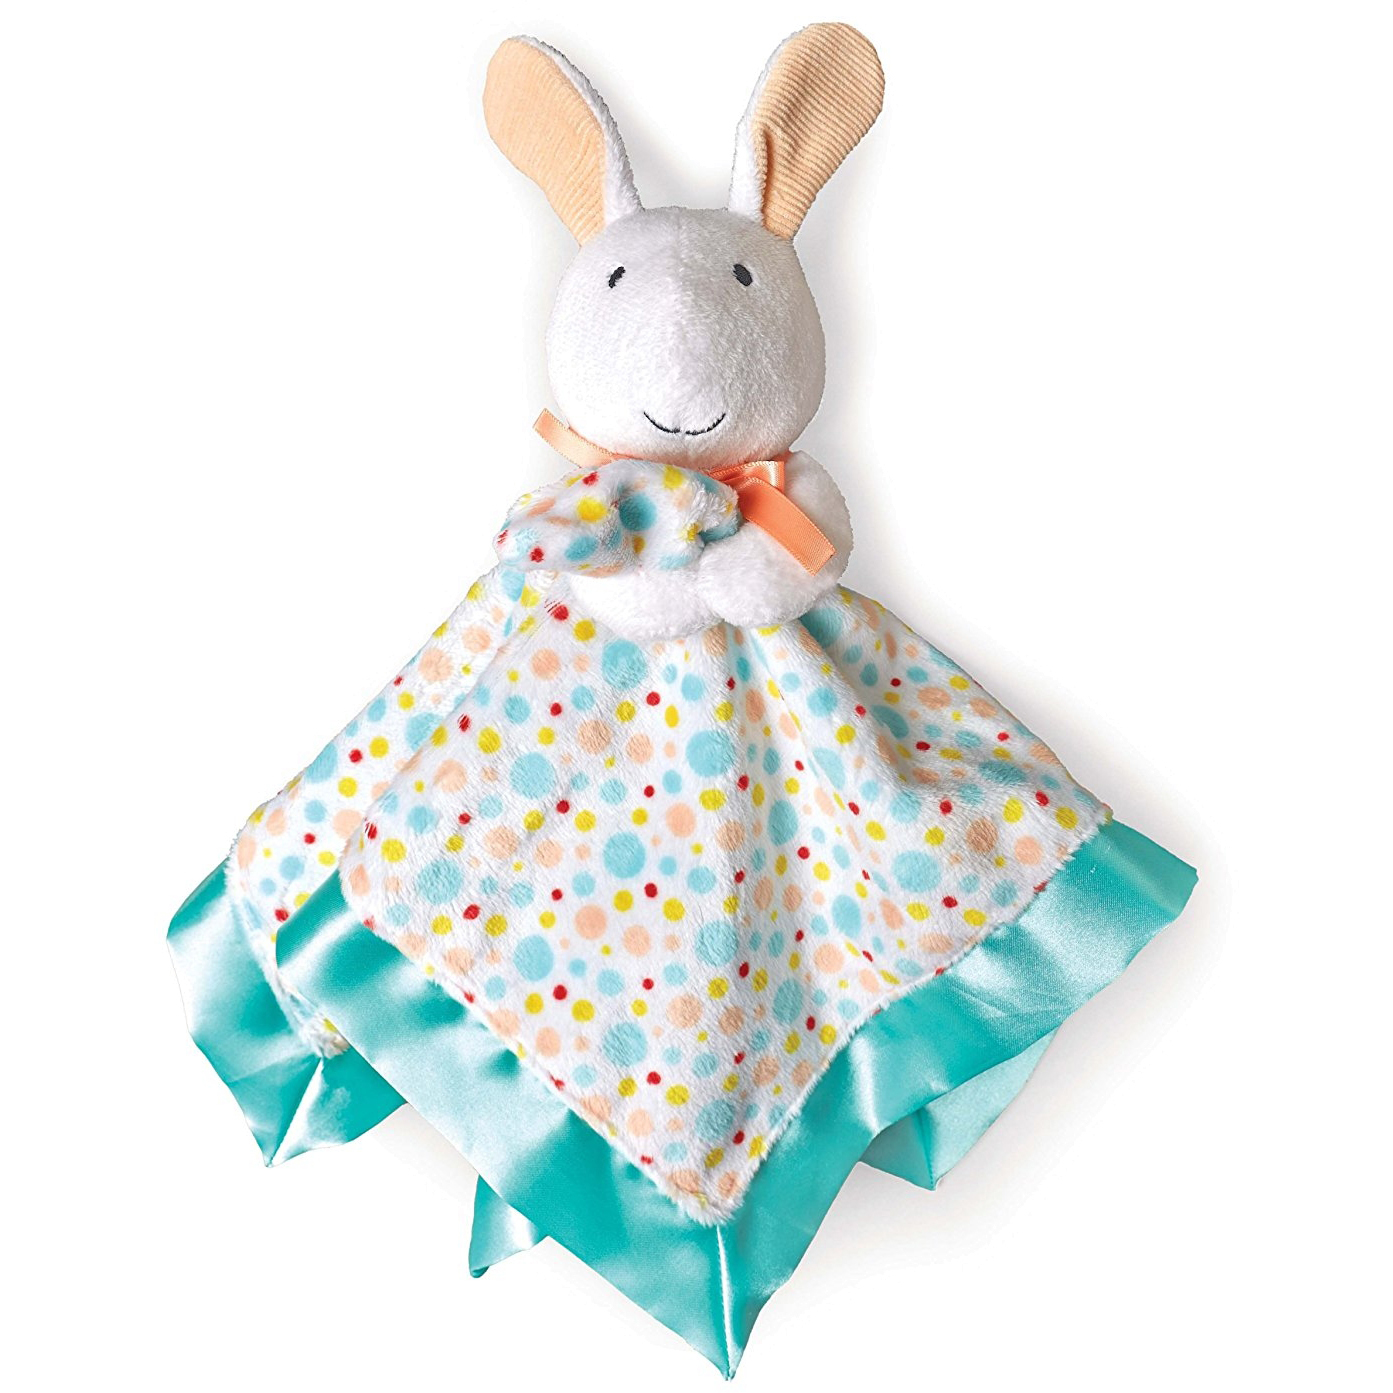 Pat The Bunny: Snuggle Blanky